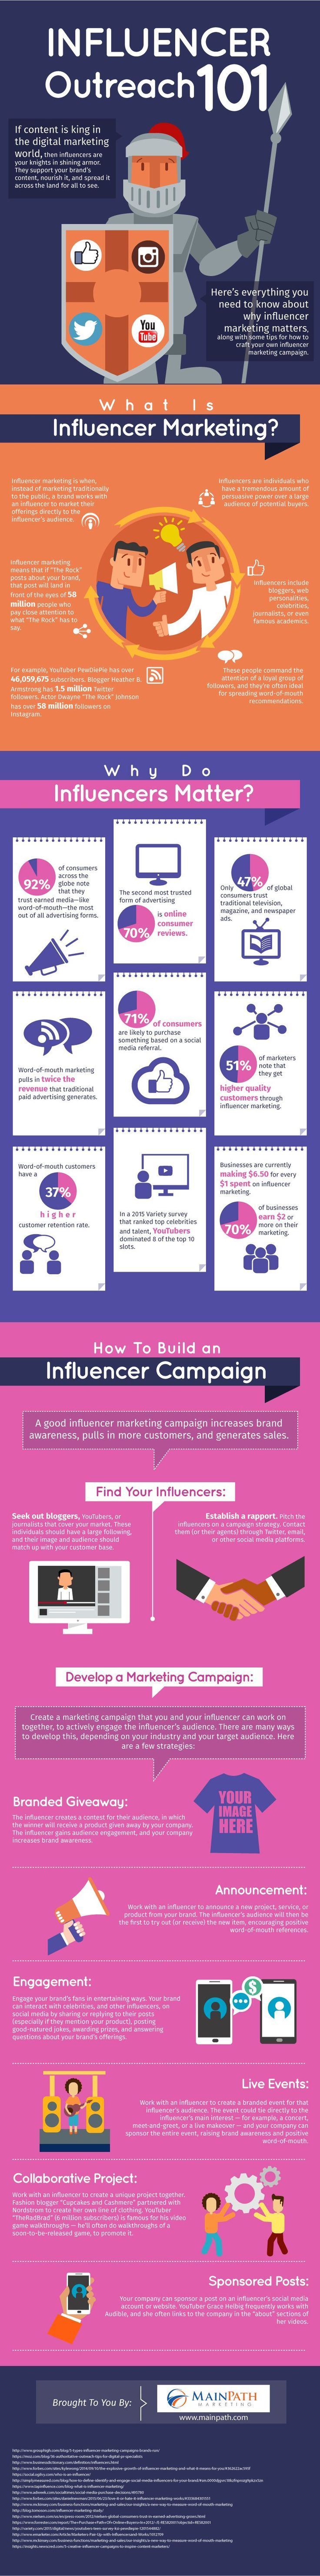 How to Build a Successful Influencer #Marketing Campaign #Infographic  http://bloggerkhan.com